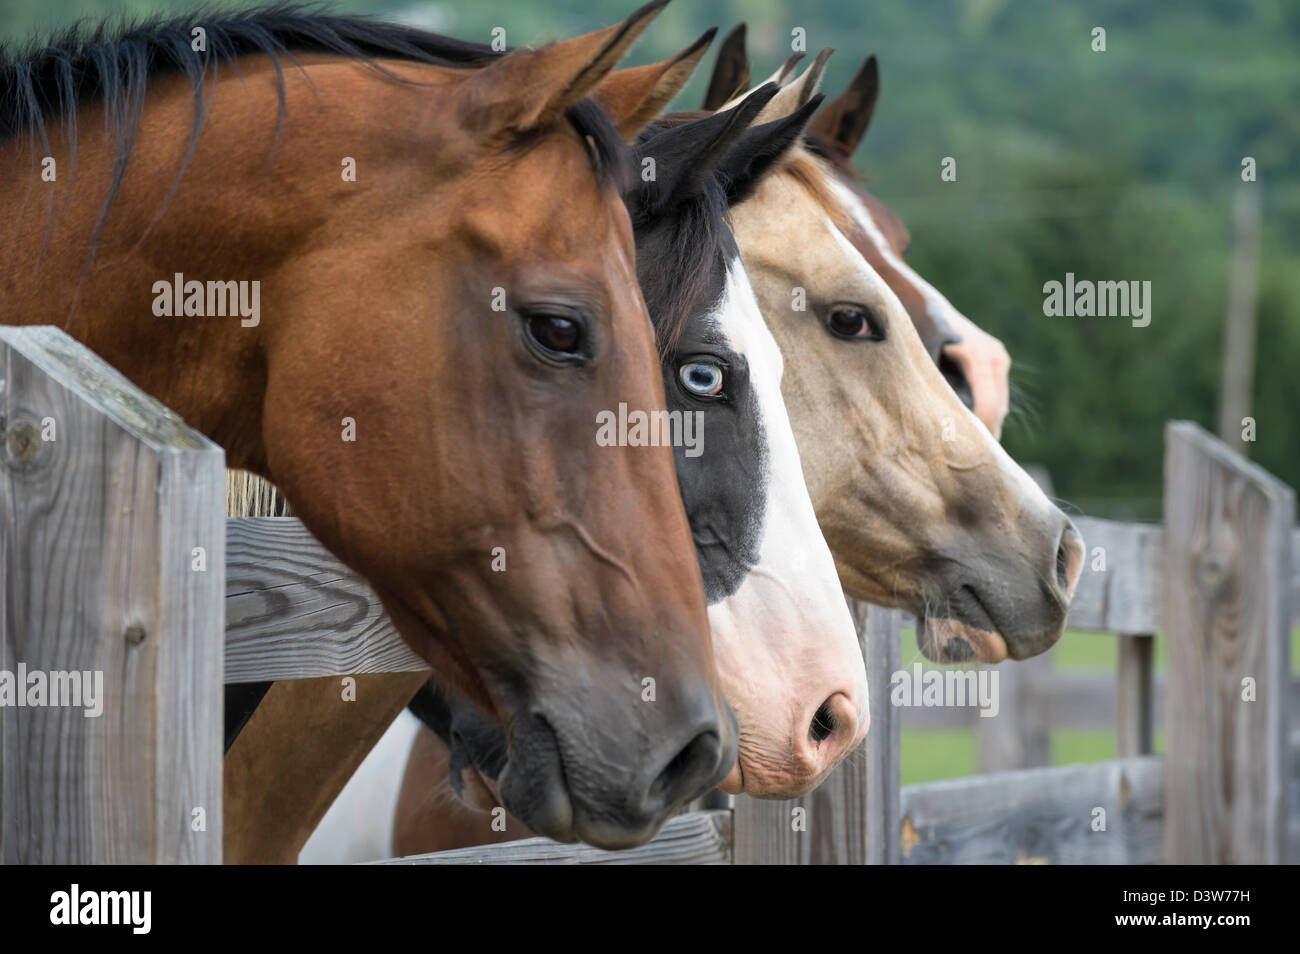 Horses lined up looking over fence as a group toward camera right, side view, focus on one animal with piercing - Stock Image